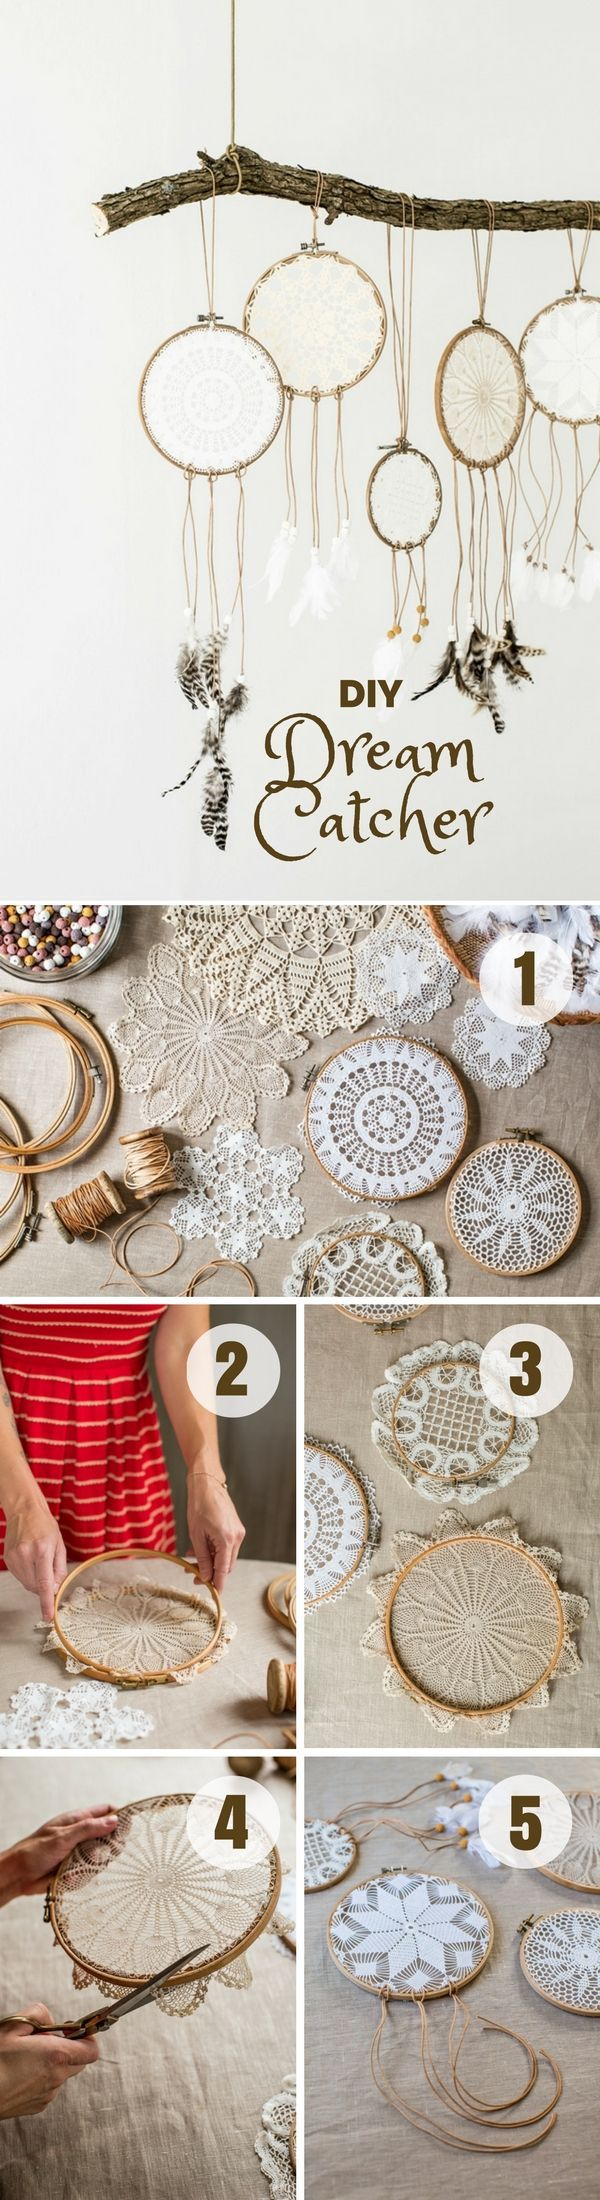 Check out how to easily make this DIY Dream Catcher @istandarddesign                                                                                                                                                                                 More